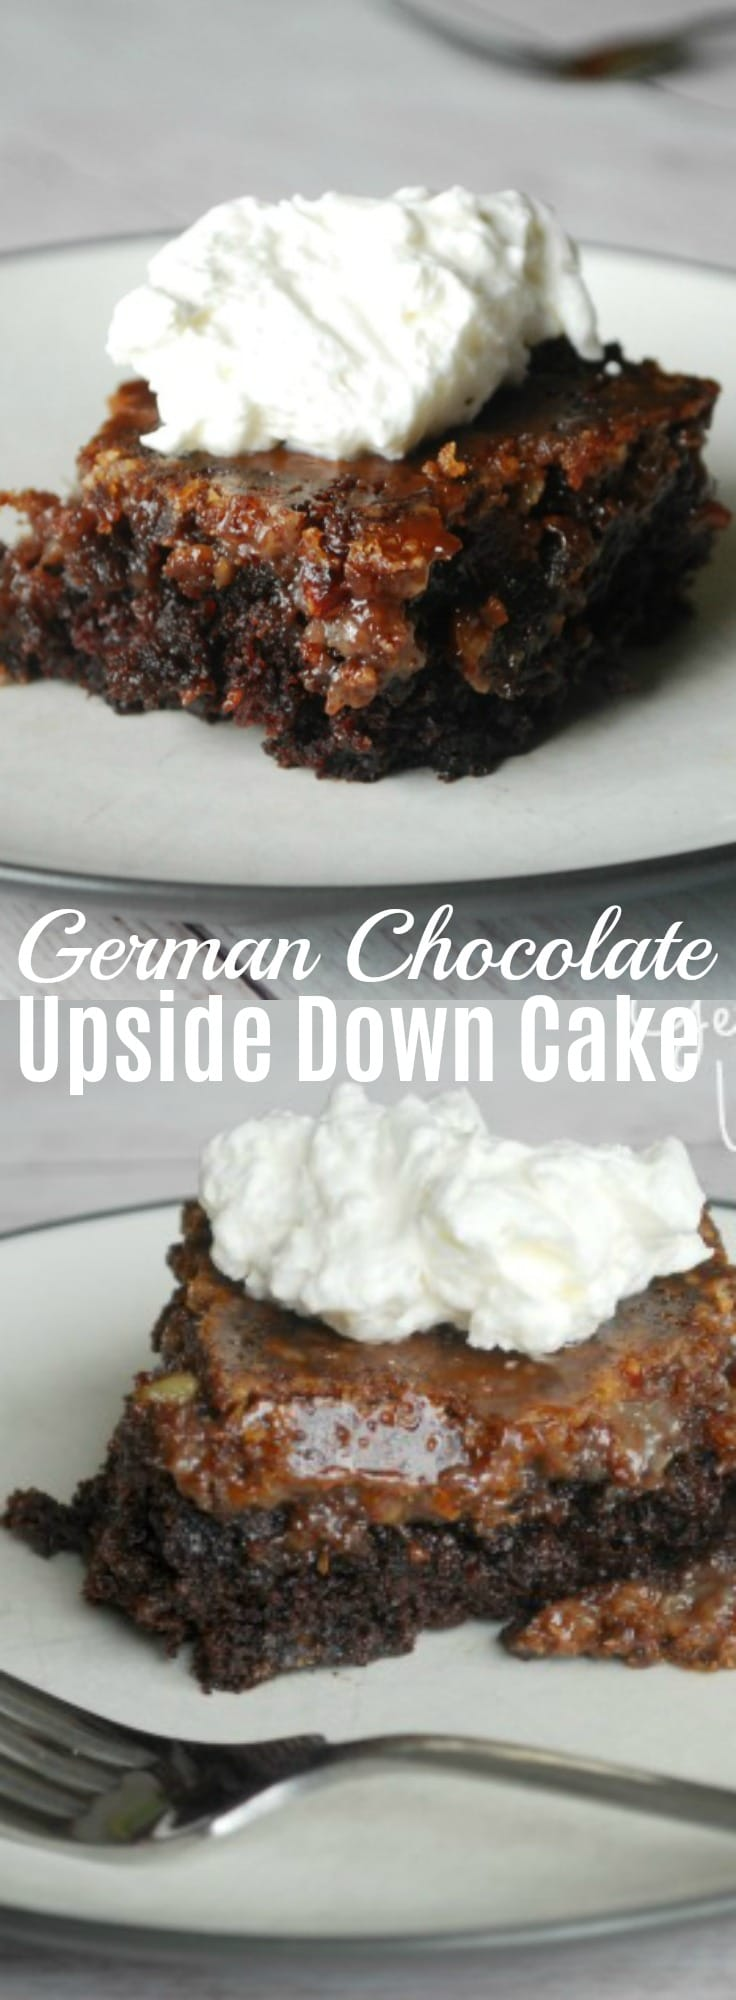 This German Chocolate Upside Down Cake has all the taste of a fussy layer cake, but at a fraction of the work! 